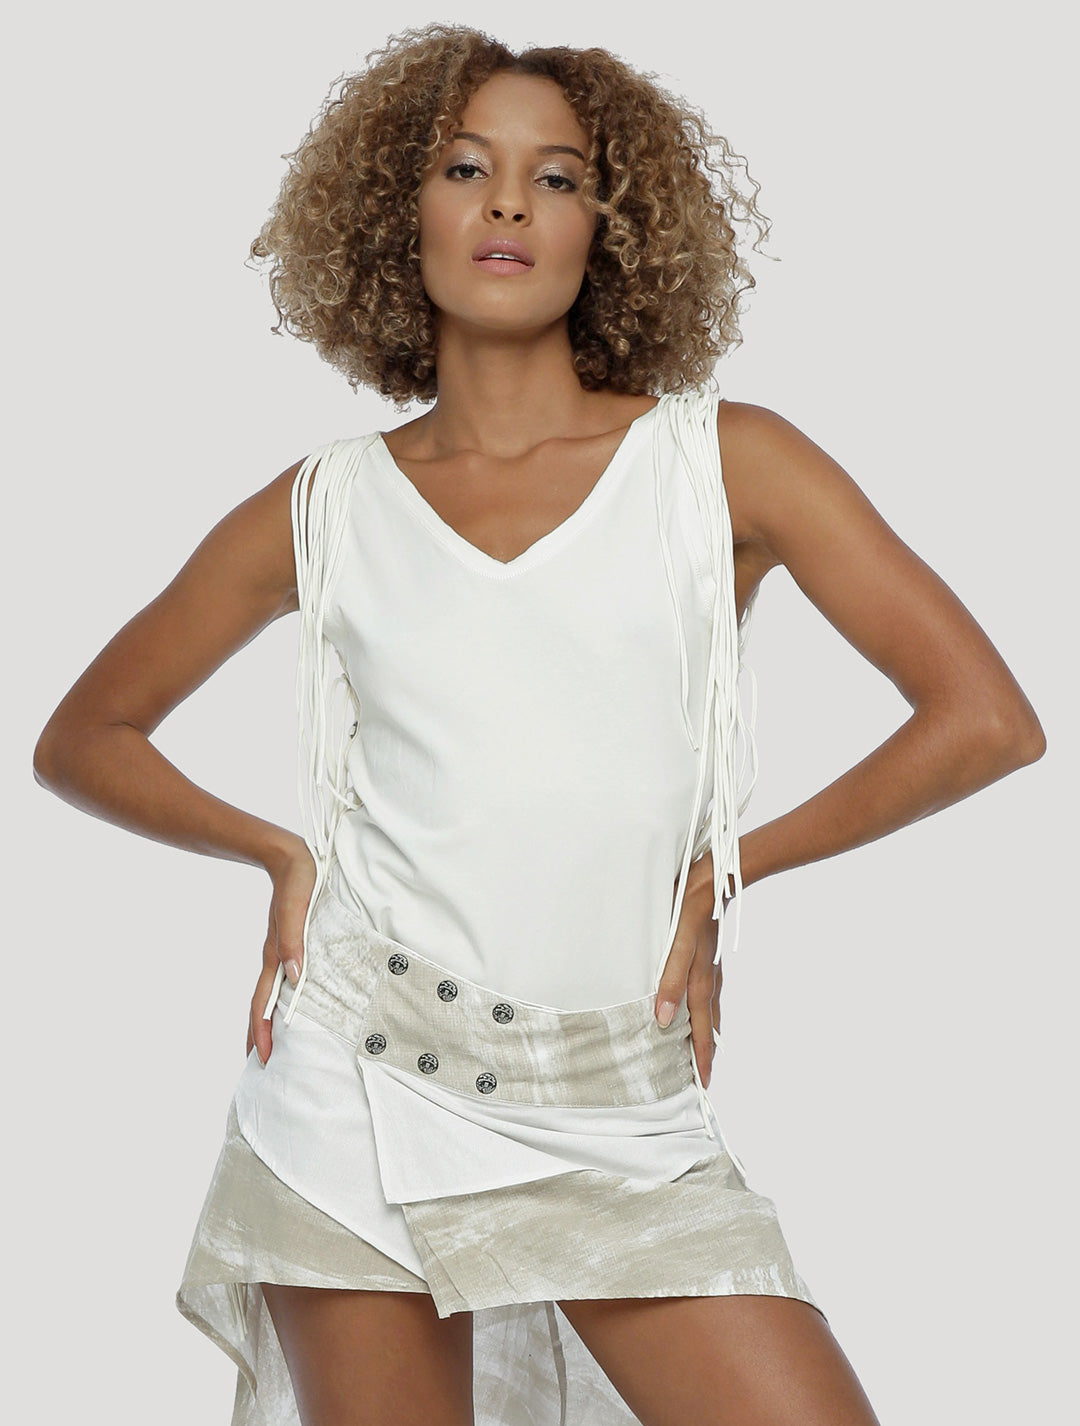 Psylo Fashion ethical alternative streetwear Pisces open-back Singlet in white